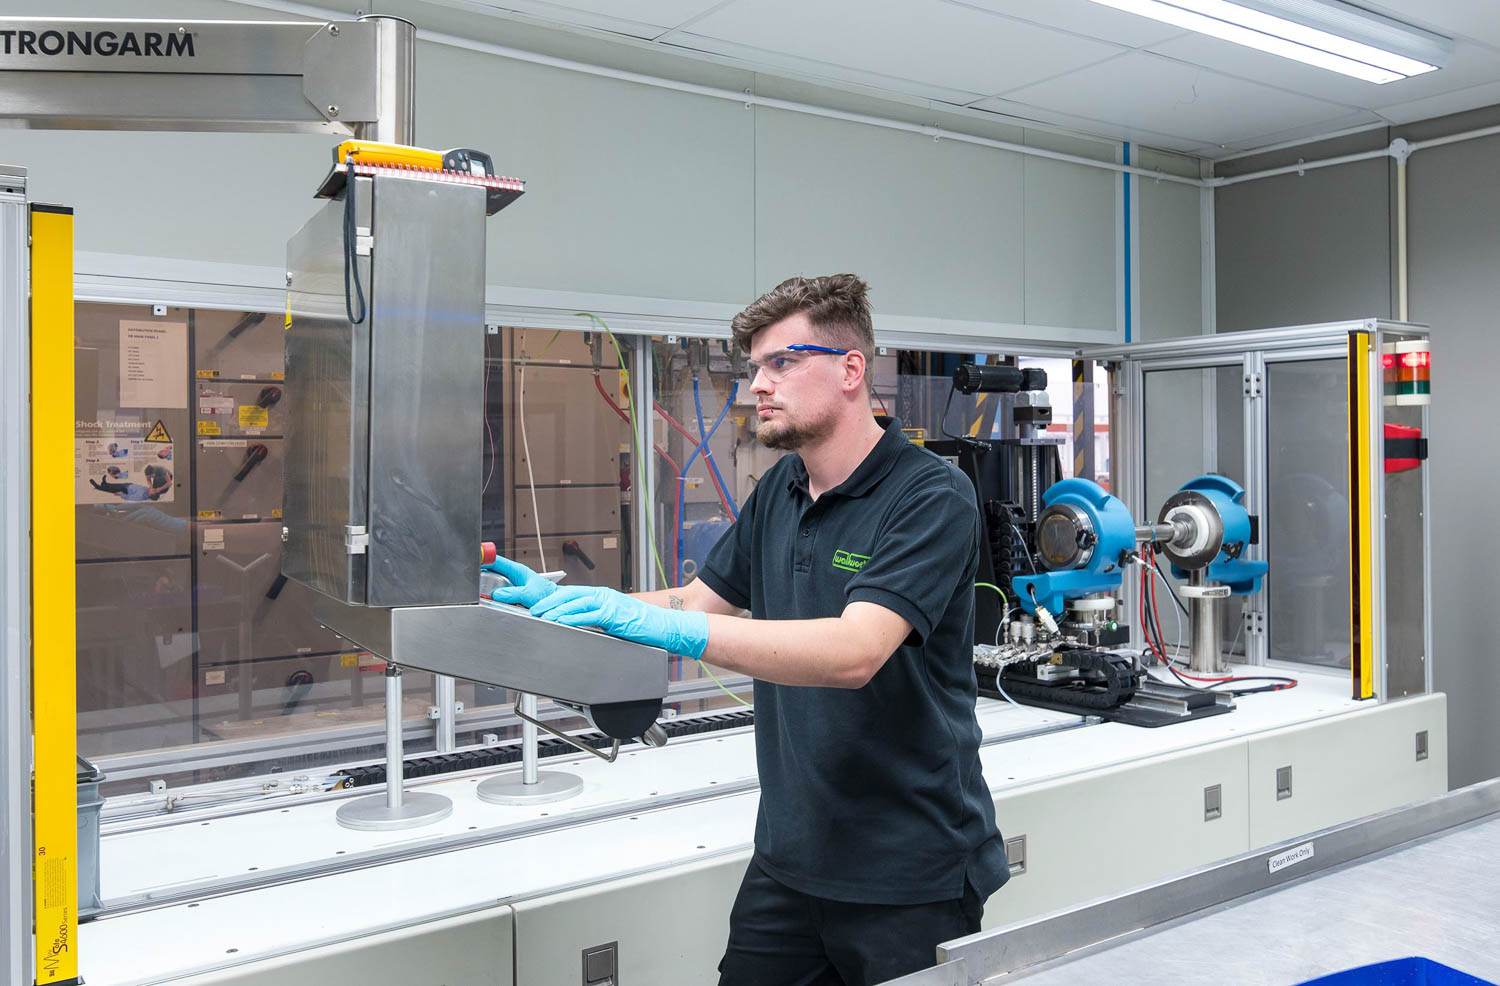 Man working at console in high tech lab